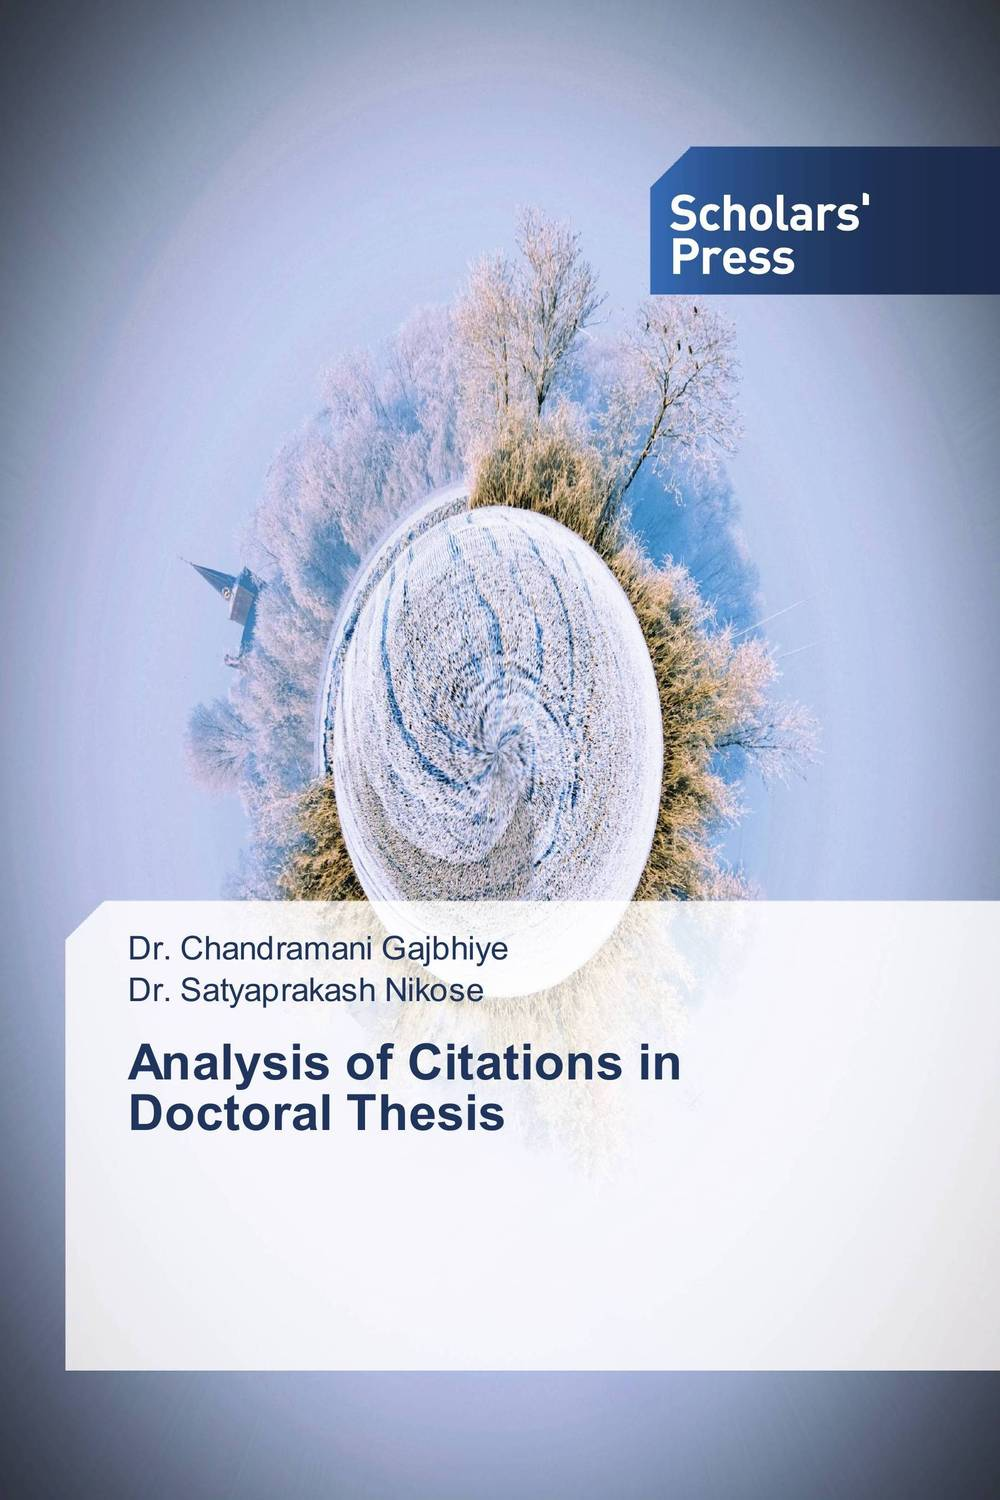 Analysis of Citations in Doctoral Thesis